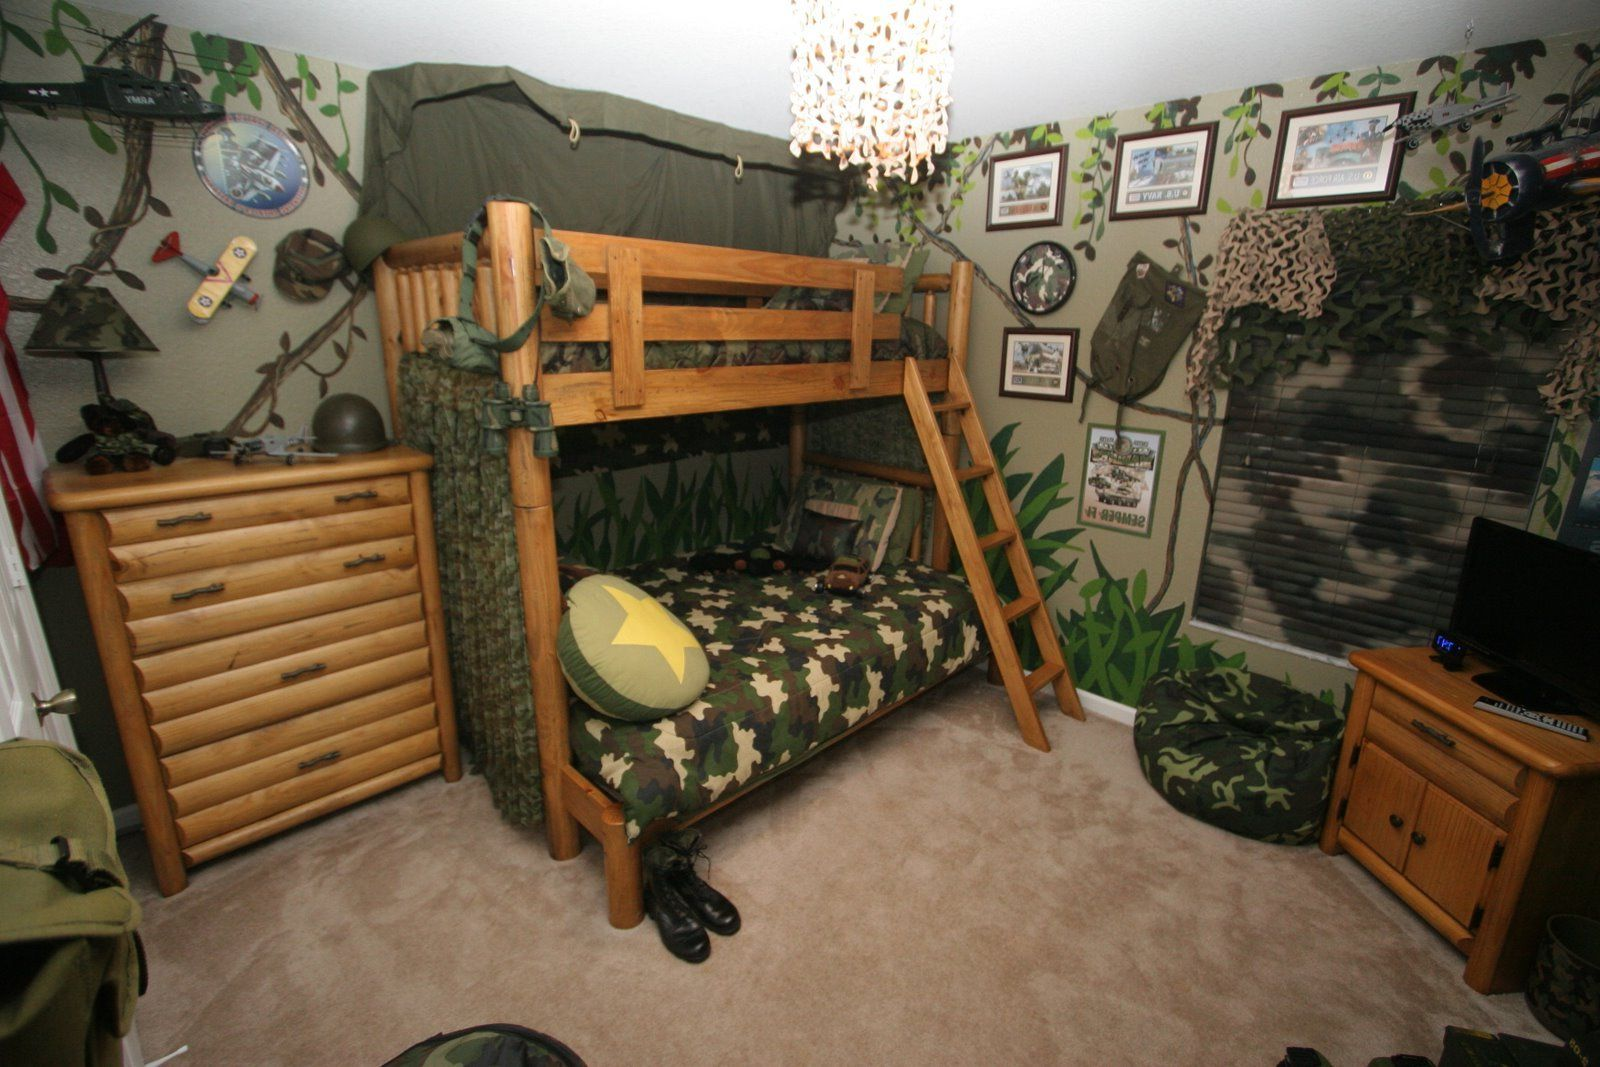 Merveilleux Camo Bedrooms For Boys | Kids Room, Modern Boy Bedroom Ideas With Army  Details Also Camo .